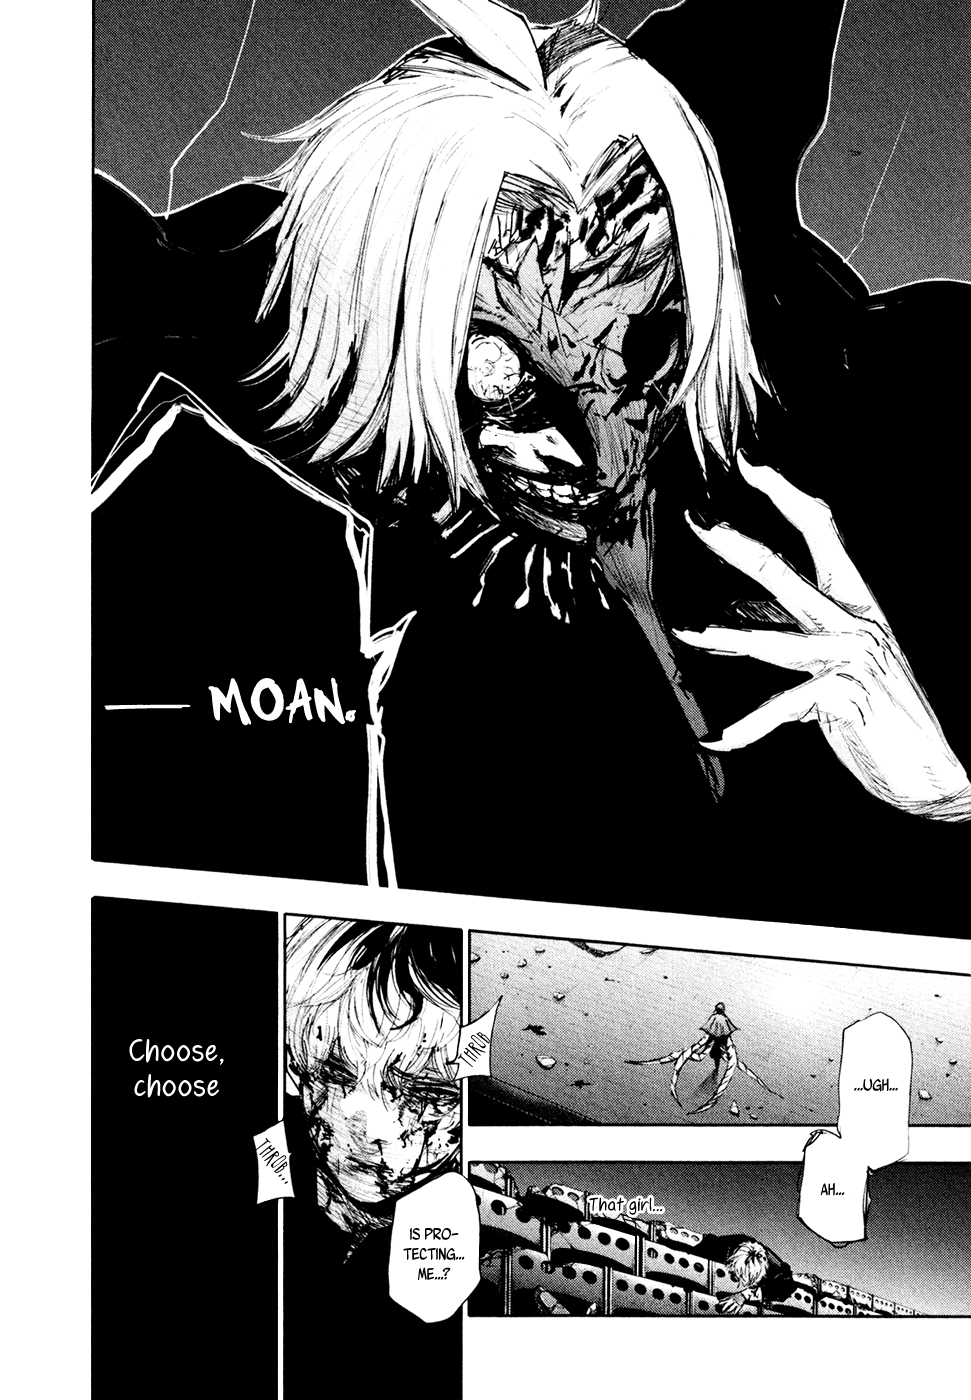 Tokyo Ghoulre Chapter 30  Online Free Manga Read Image 8